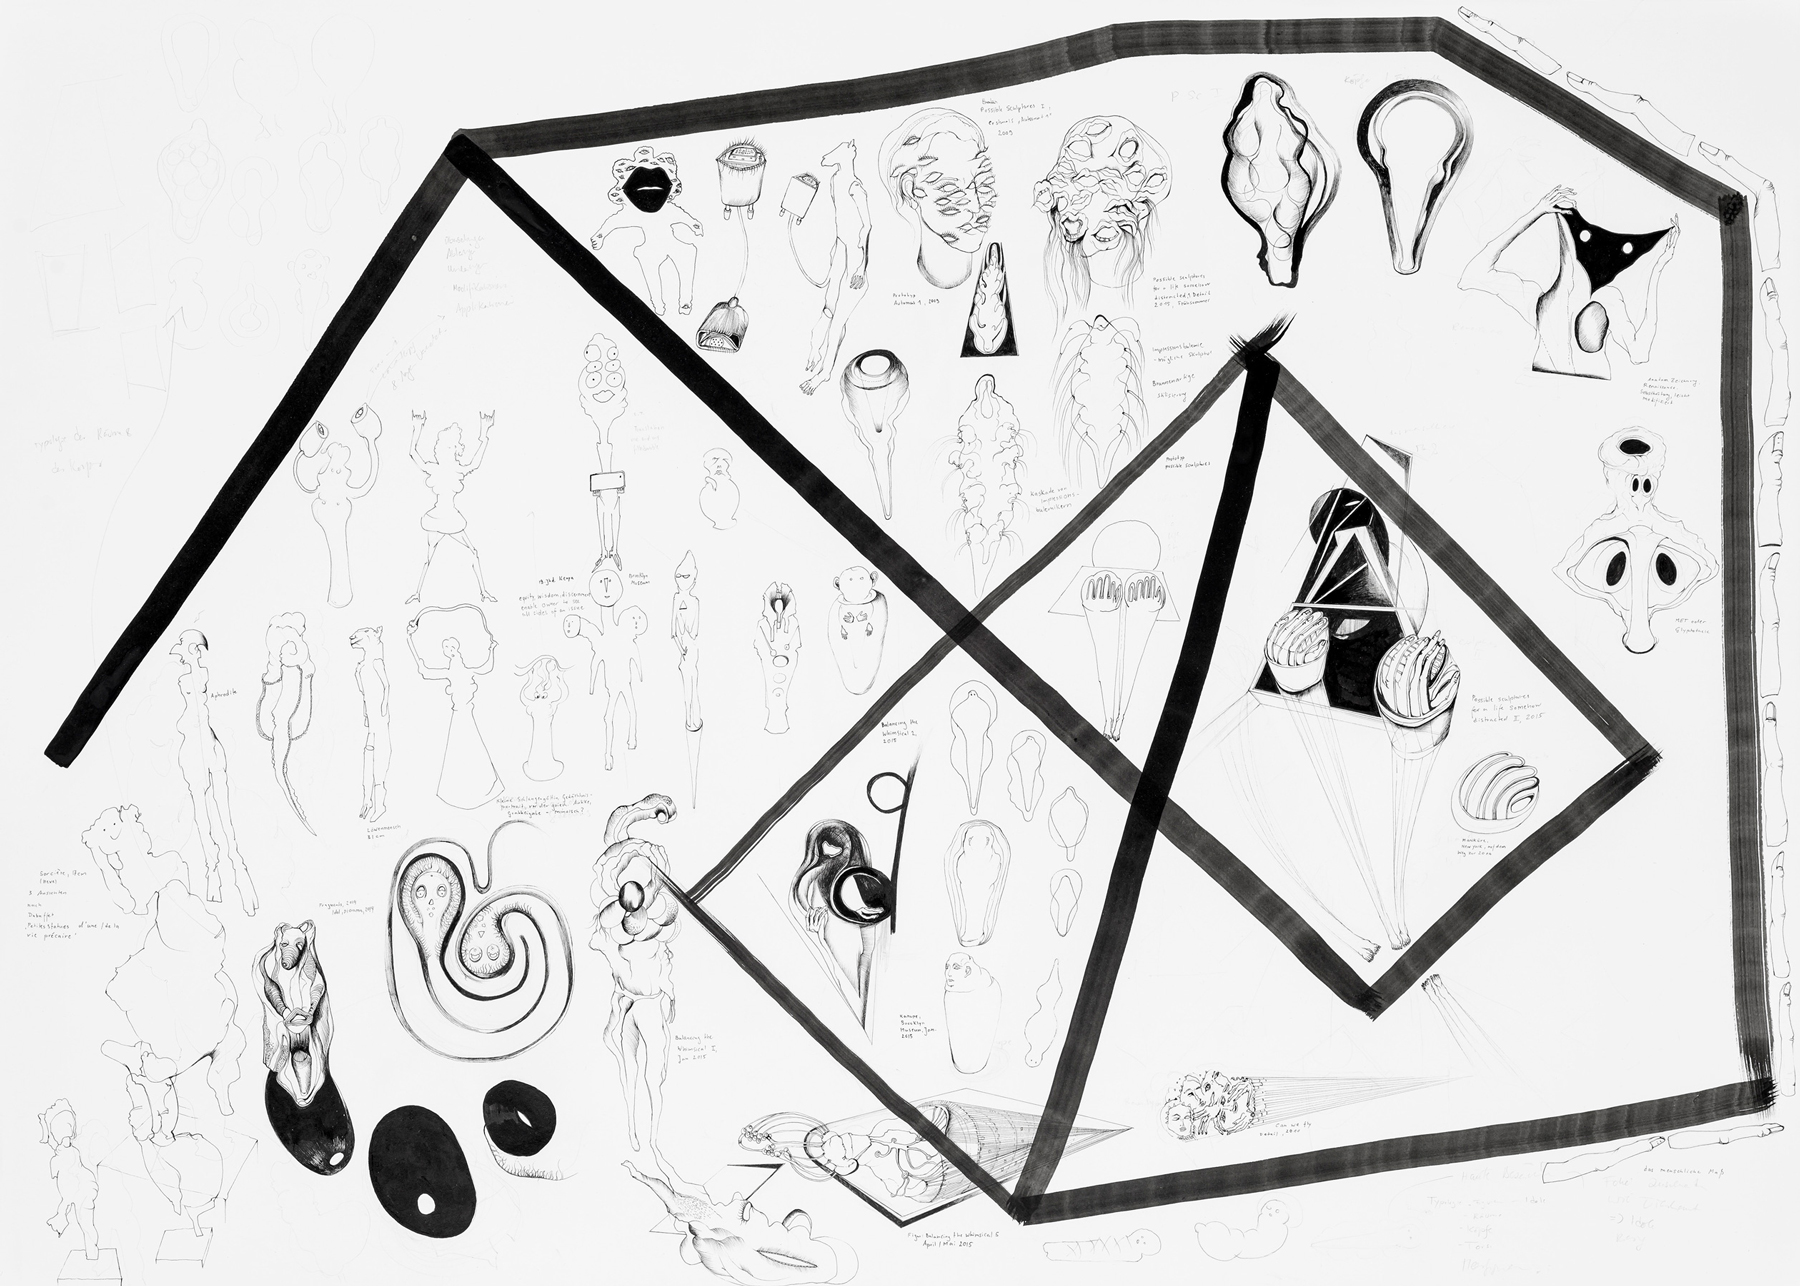 Nina Annabelle Maerkl, Display 1, 2017, ink and pencil on paper, 270 x 135 cm